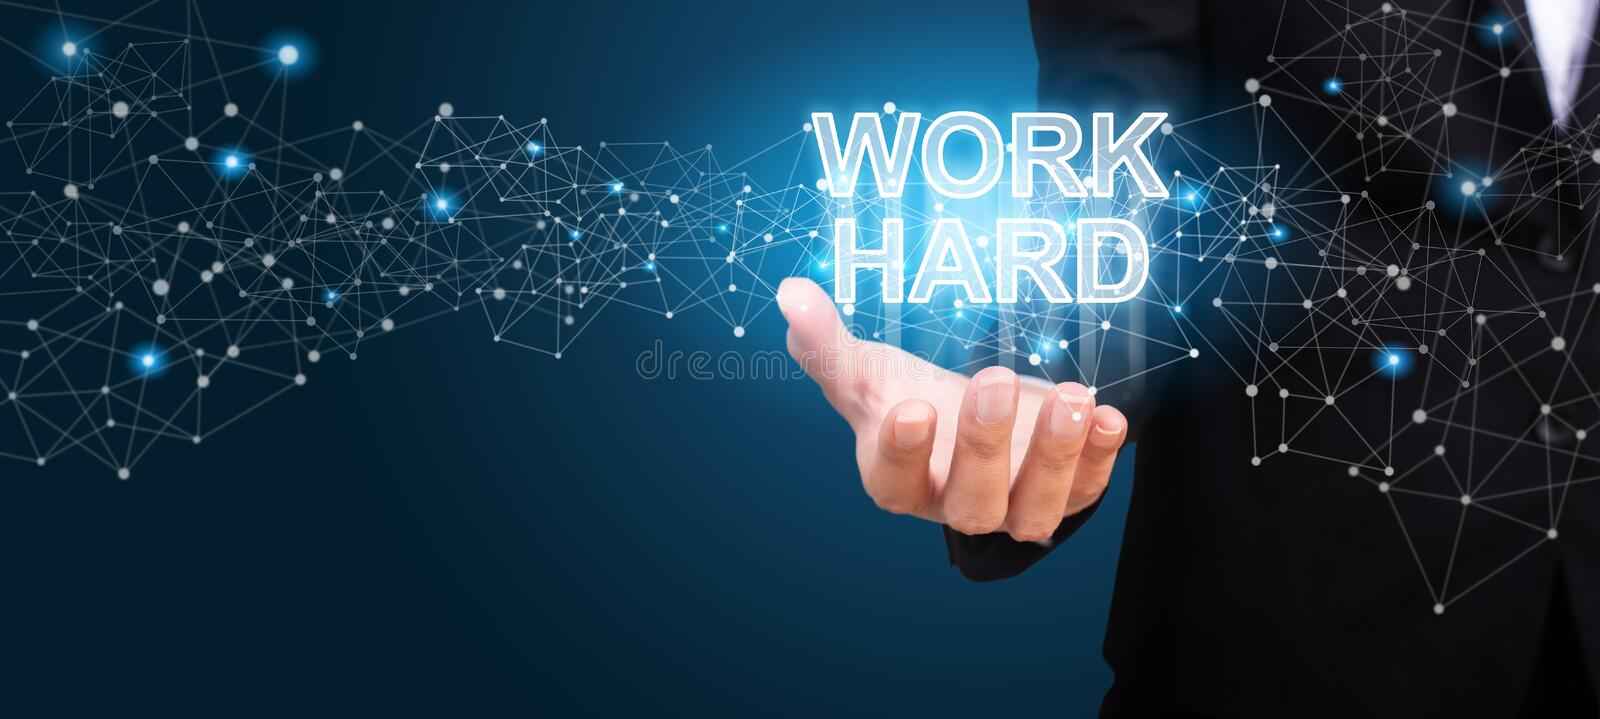 Work Hard in the hand of business. Work Hard concept stock images